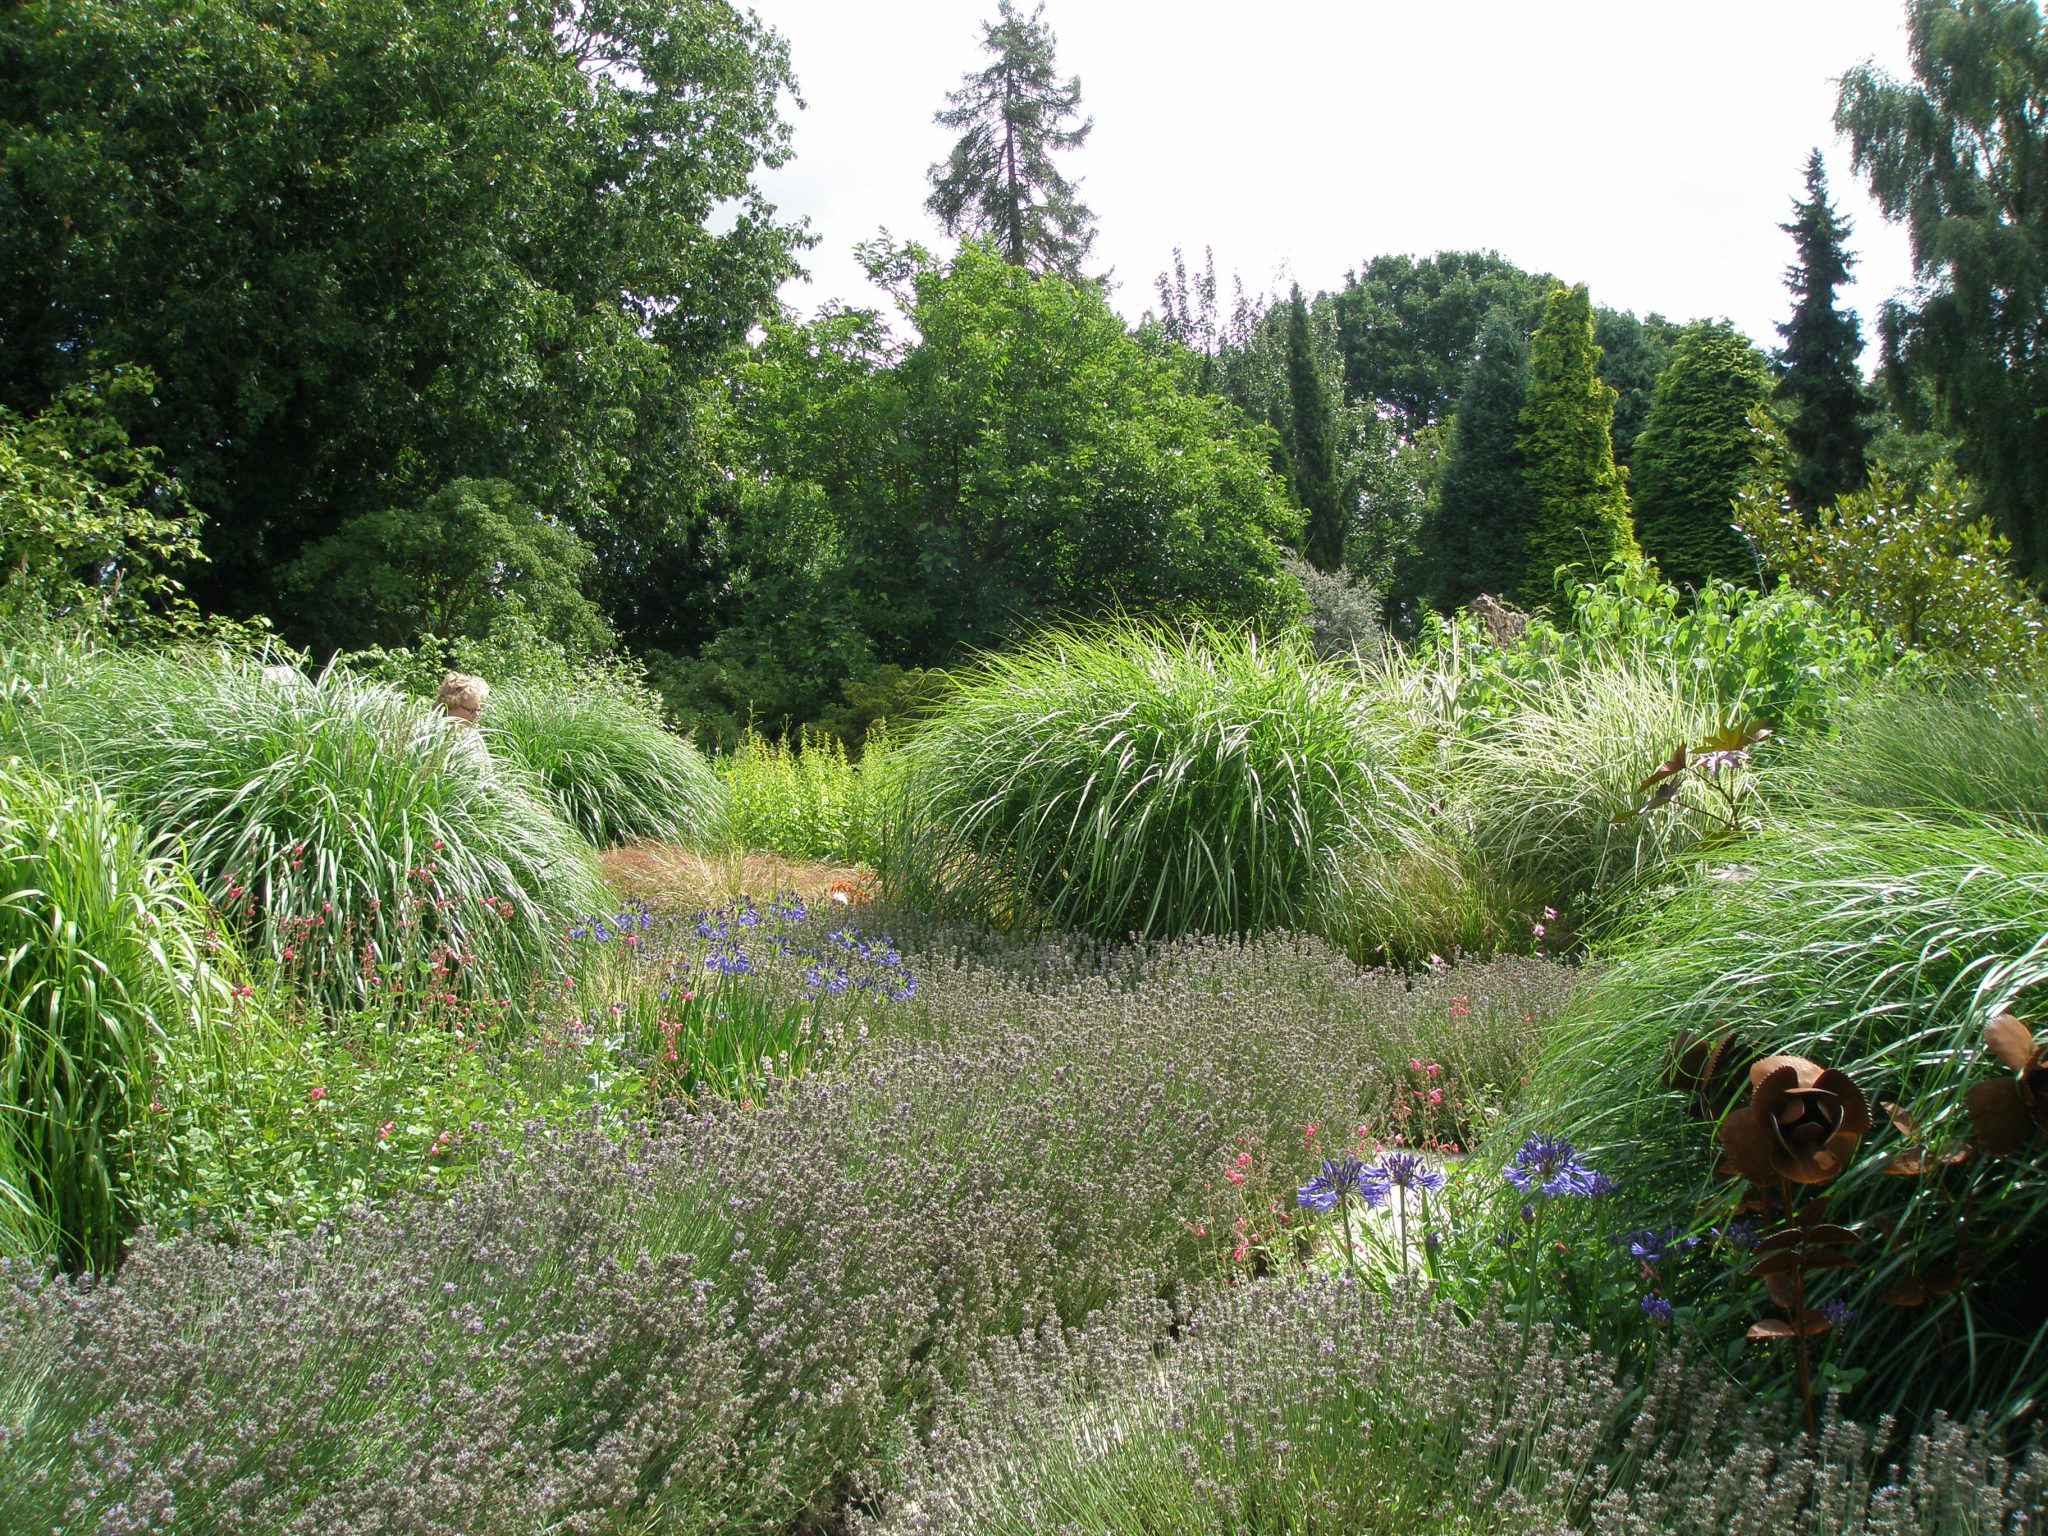 As we entered the Garden, we were engulfed by tall grasses, blooming lavender, and majestic agapanthus.